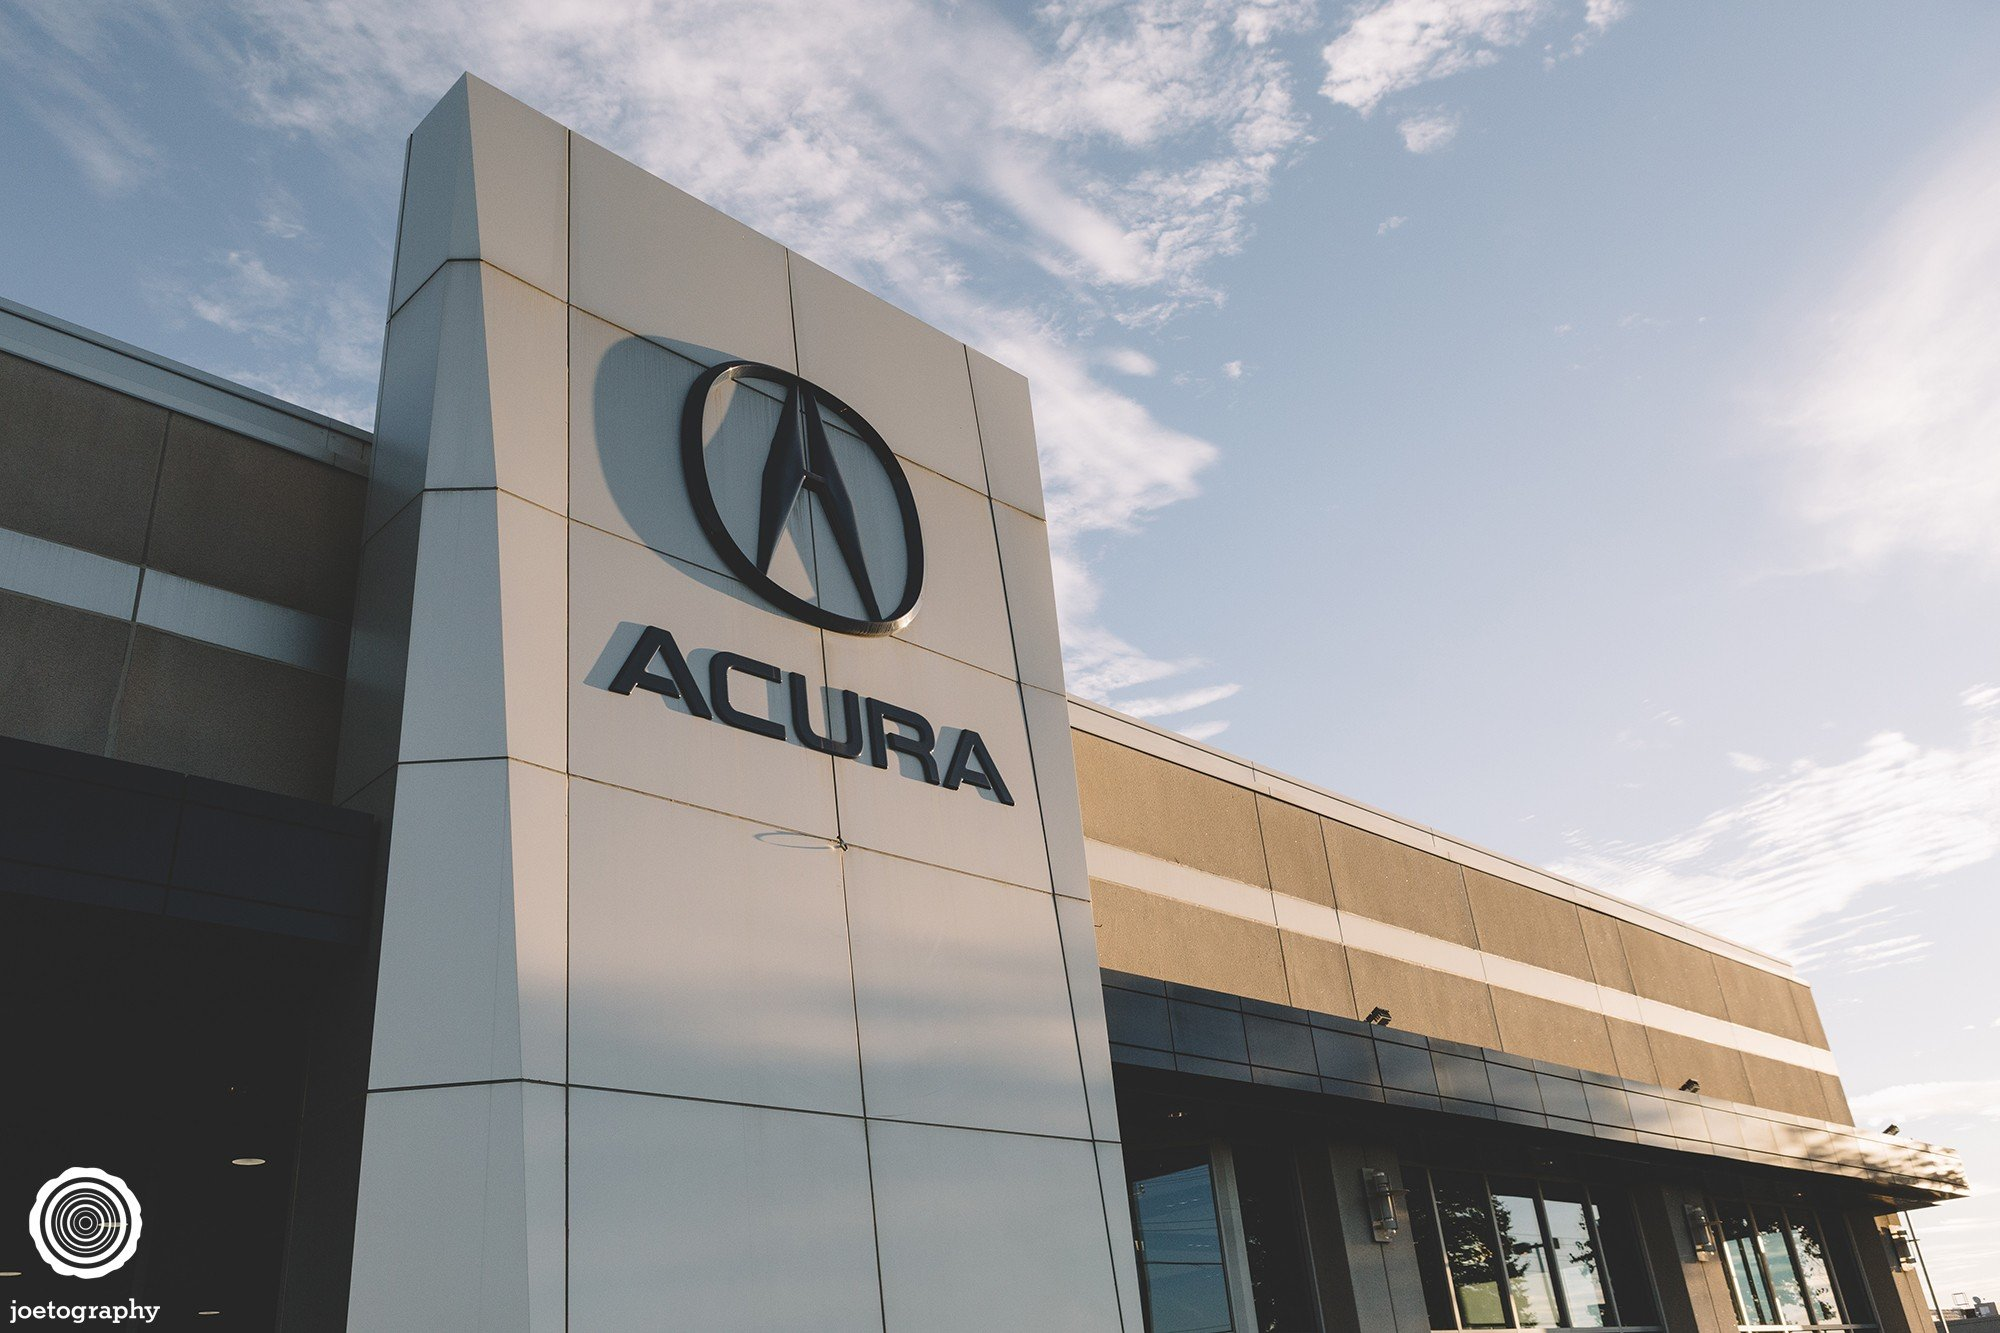 Capital Construction: Ed Martin Acura | Commercial Photography